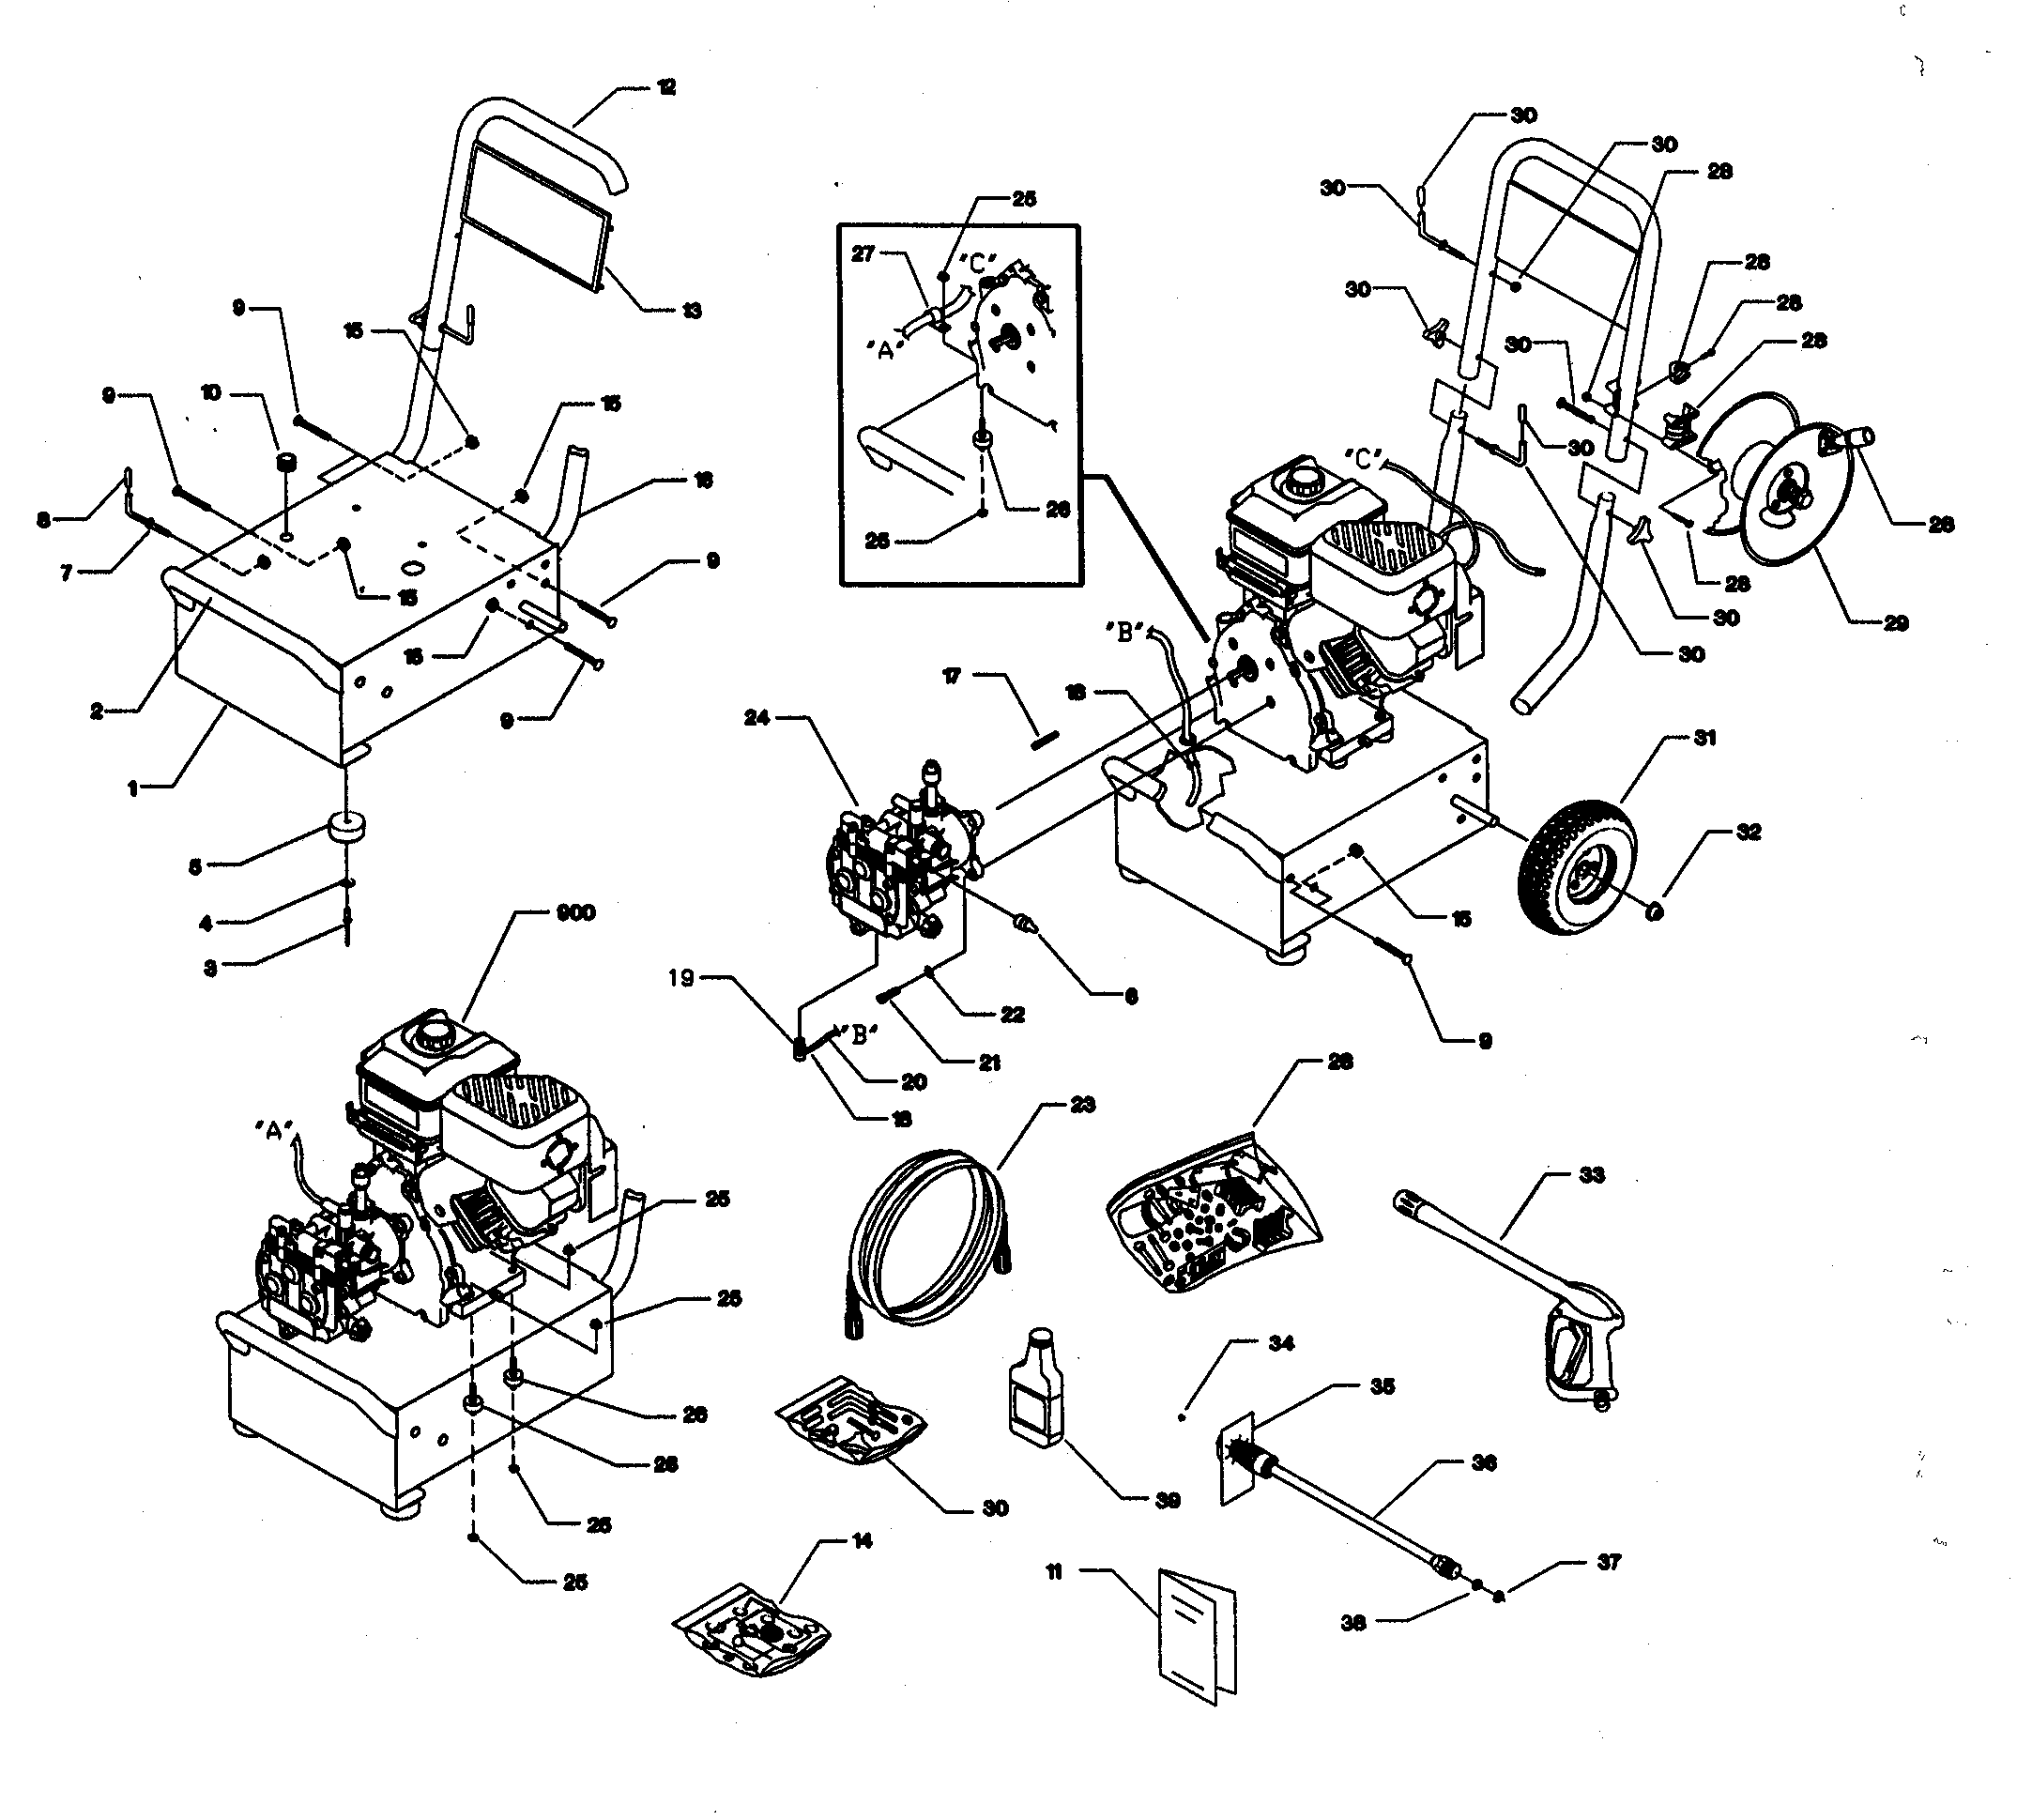 craftsman pressure washer pump parts diagram electrical wire diagrams house wiring model 580767302 sears